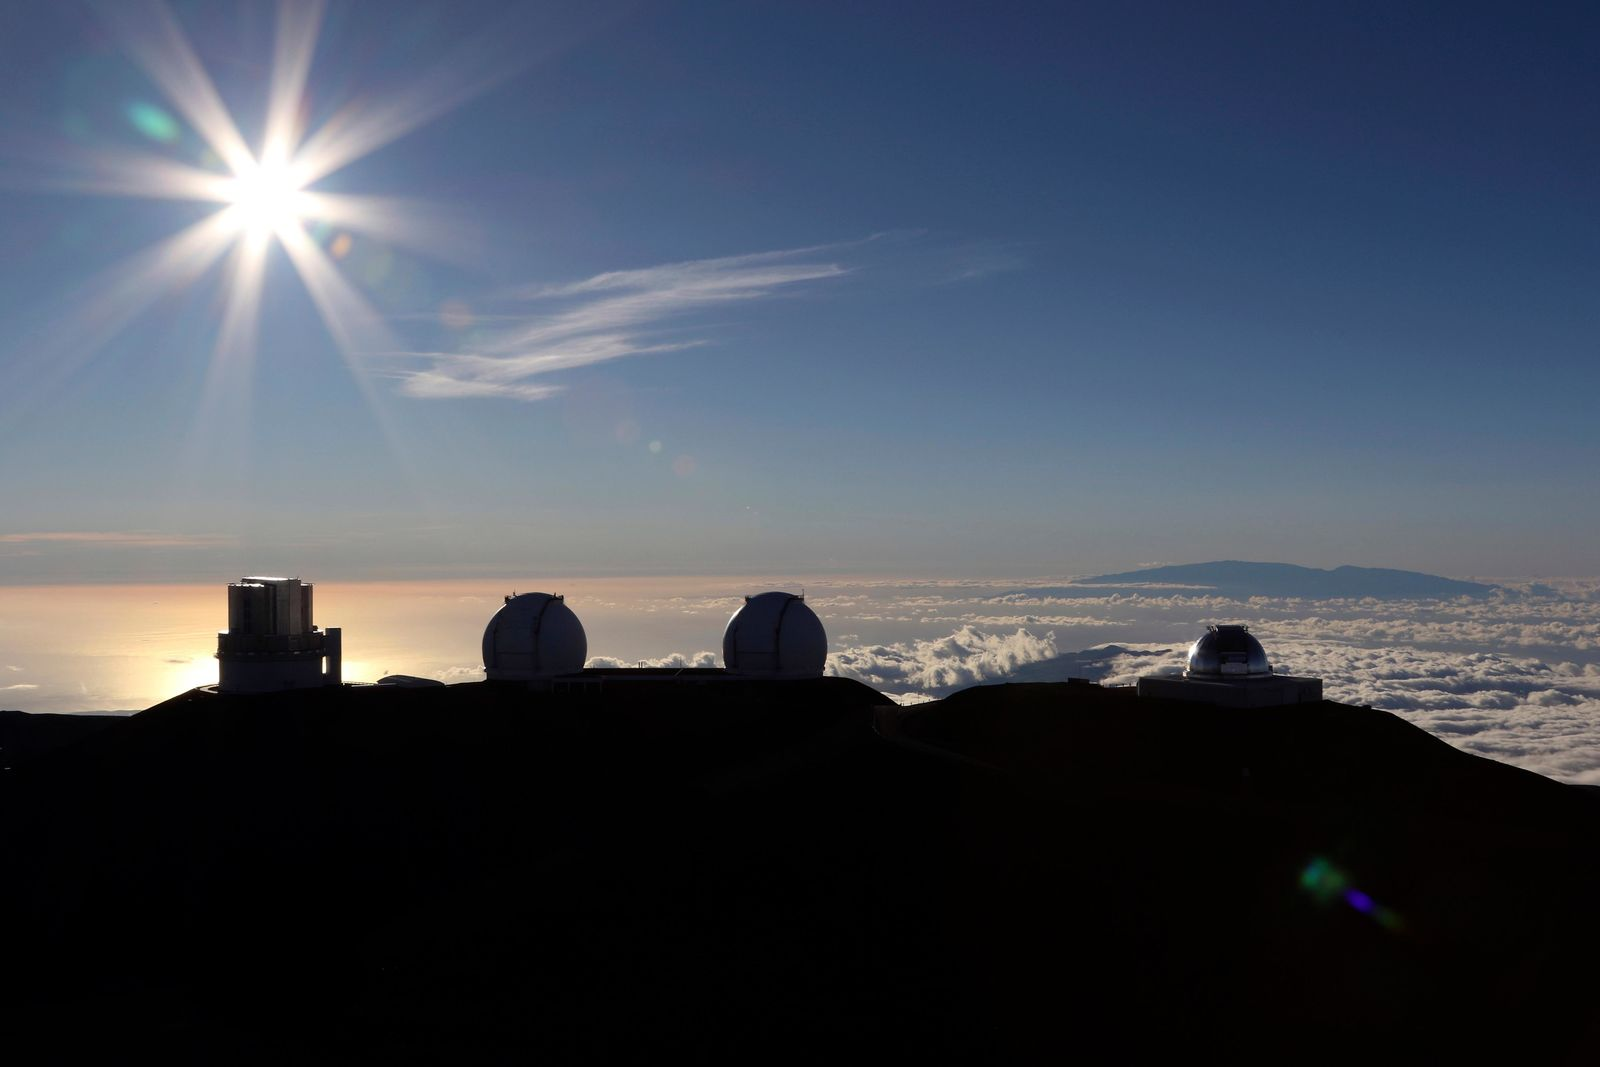 FILE - In this Sunday, July 14, 2019, file photo, the sun sets behind telescopes at the summit of Mauna Kea. Scientists are expected to explore fundamental questions about our universe when they use a giant new telescope planned for the summit of Hawaii's tallest mountain. That includes whether there's life outside our solar system and how stars and galaxies formed in the earliest years of the universe. But some Native Hawaiians don't want the Thirty Meter Telescope to be built at Mauna Kea's summit, saying it will further harm a place they consider sacred. (AP Photo/Caleb Jones, File)